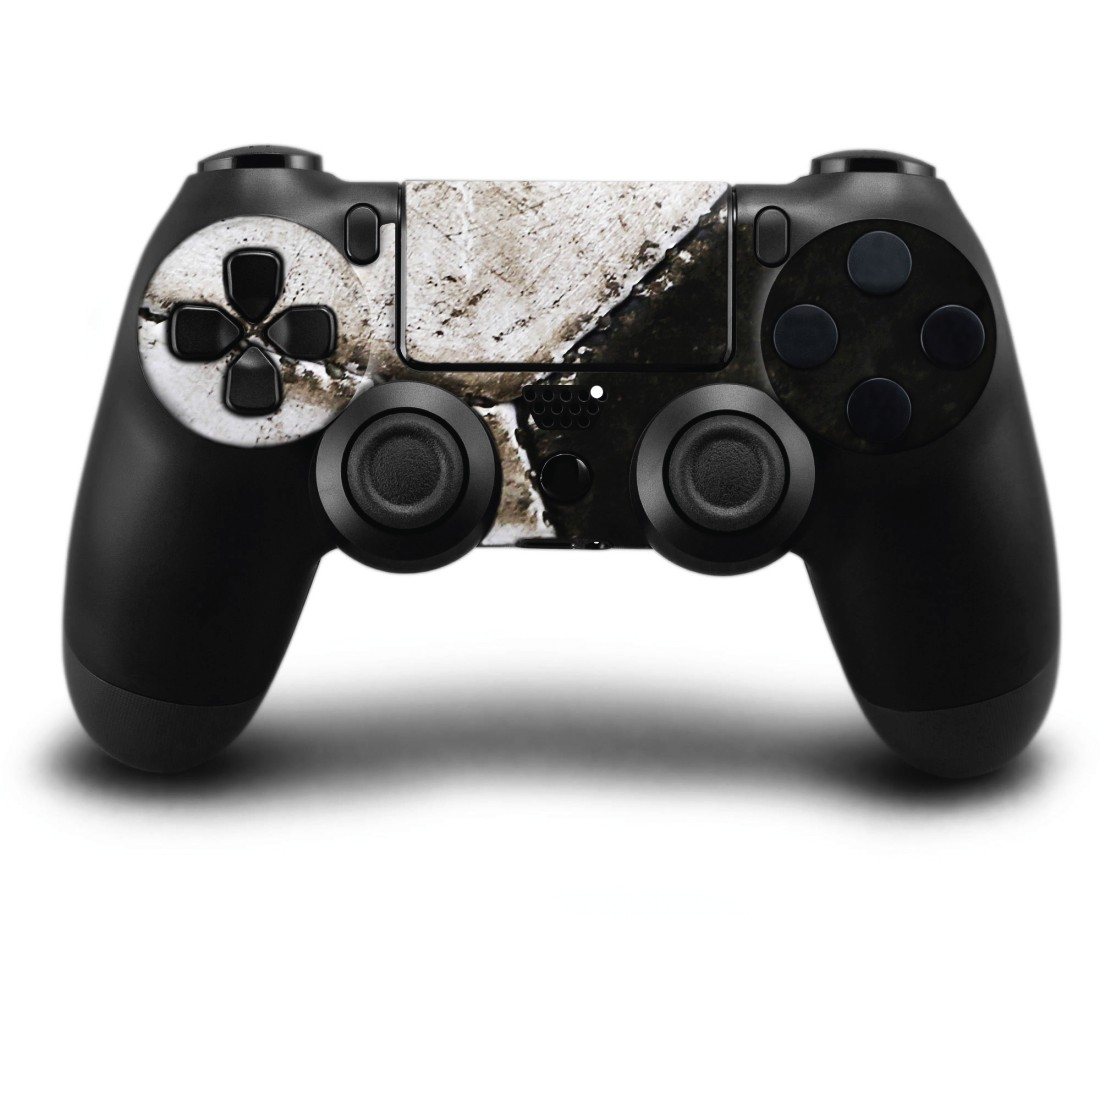 "awx4 High-Res Appliance 4 - Hama, ""Soccer"" Design-Skin for PlayStation 4 PRO"